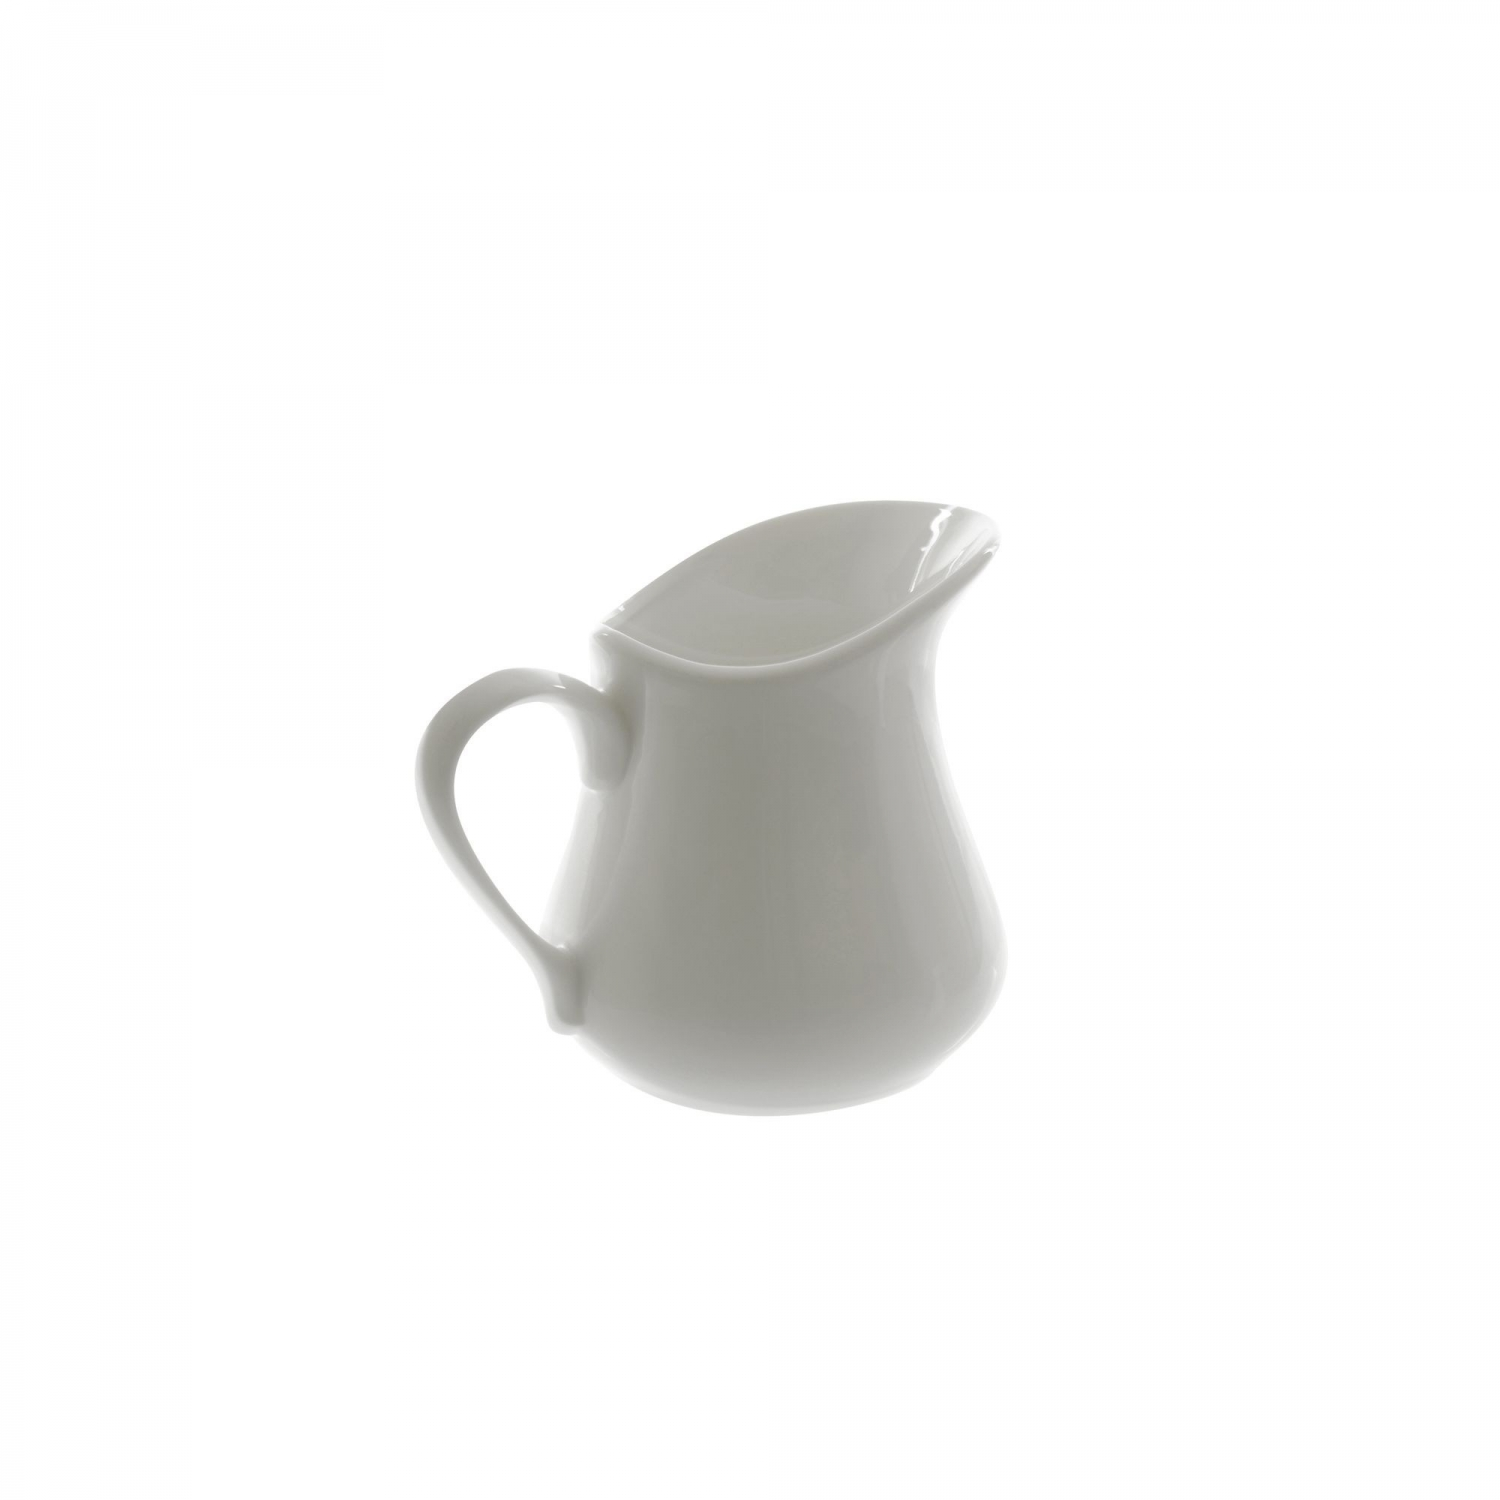 10 Strawberry Street WTR-3JUG Whittier Milk Jug / Creamer 4 oz.